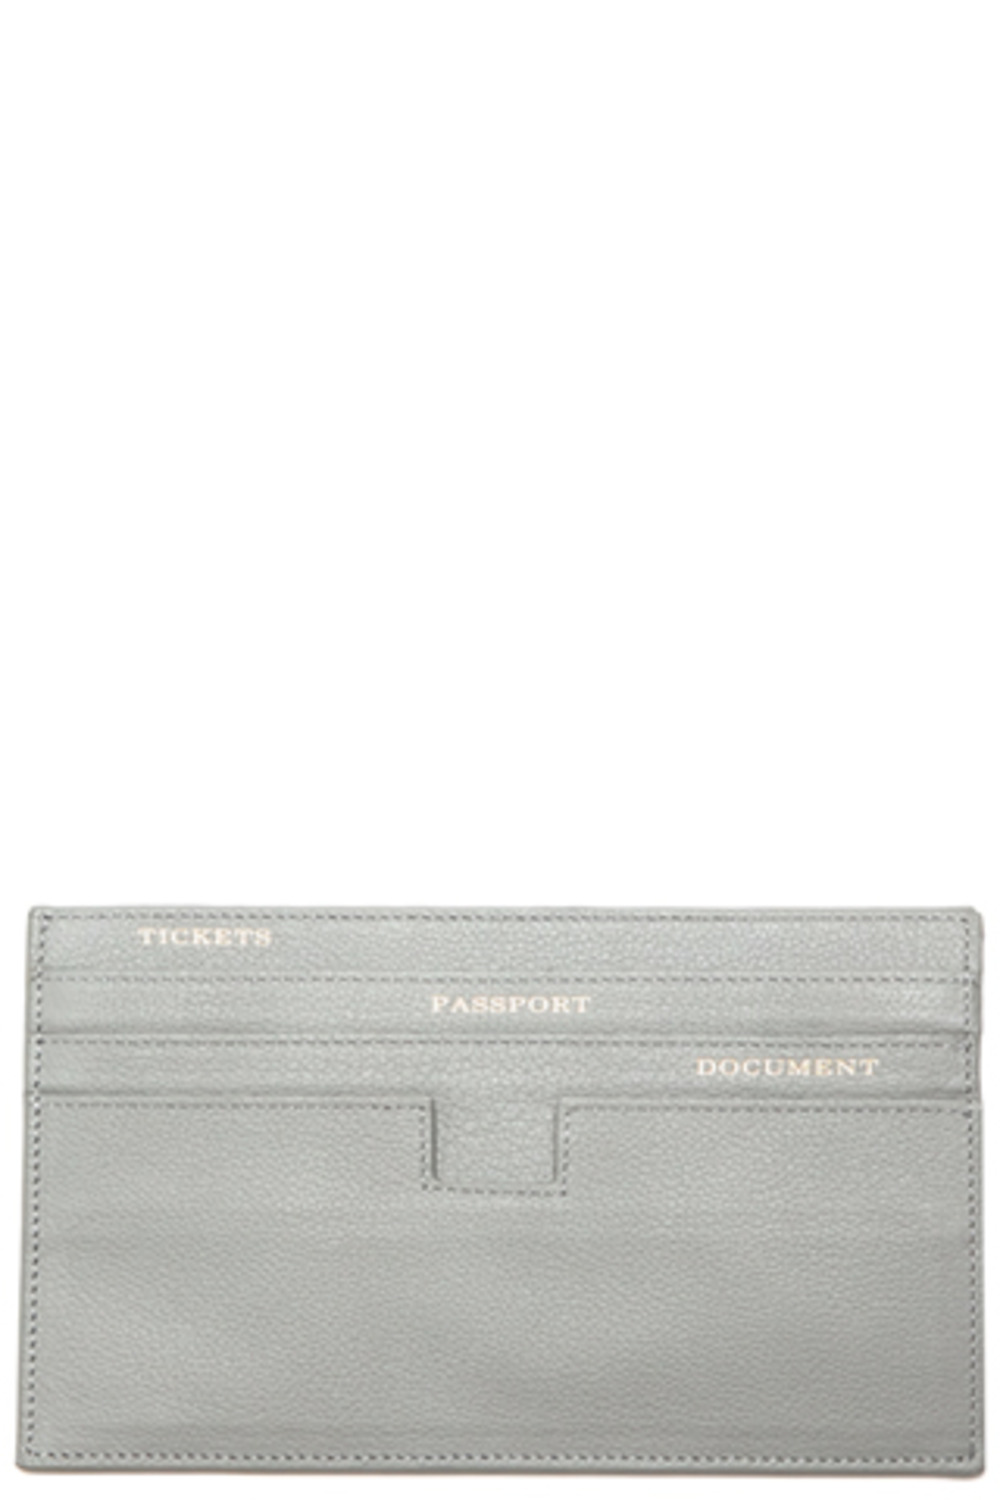 LightGrey Travel Wallet